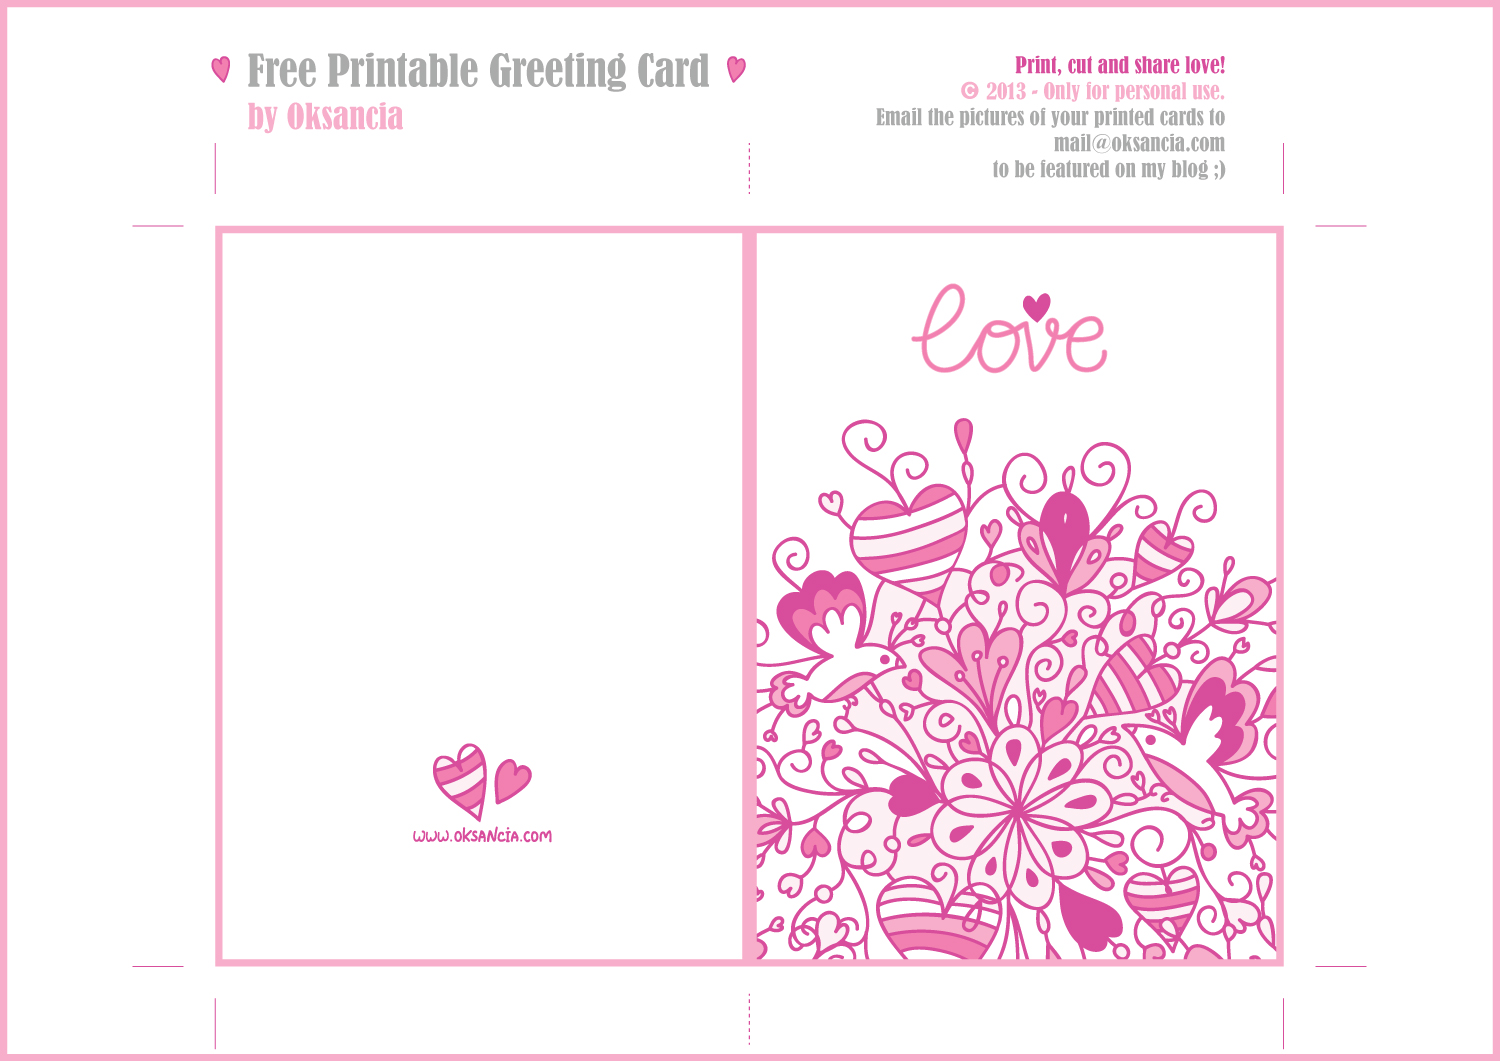 6 Images of Love Greeting Cards Printable